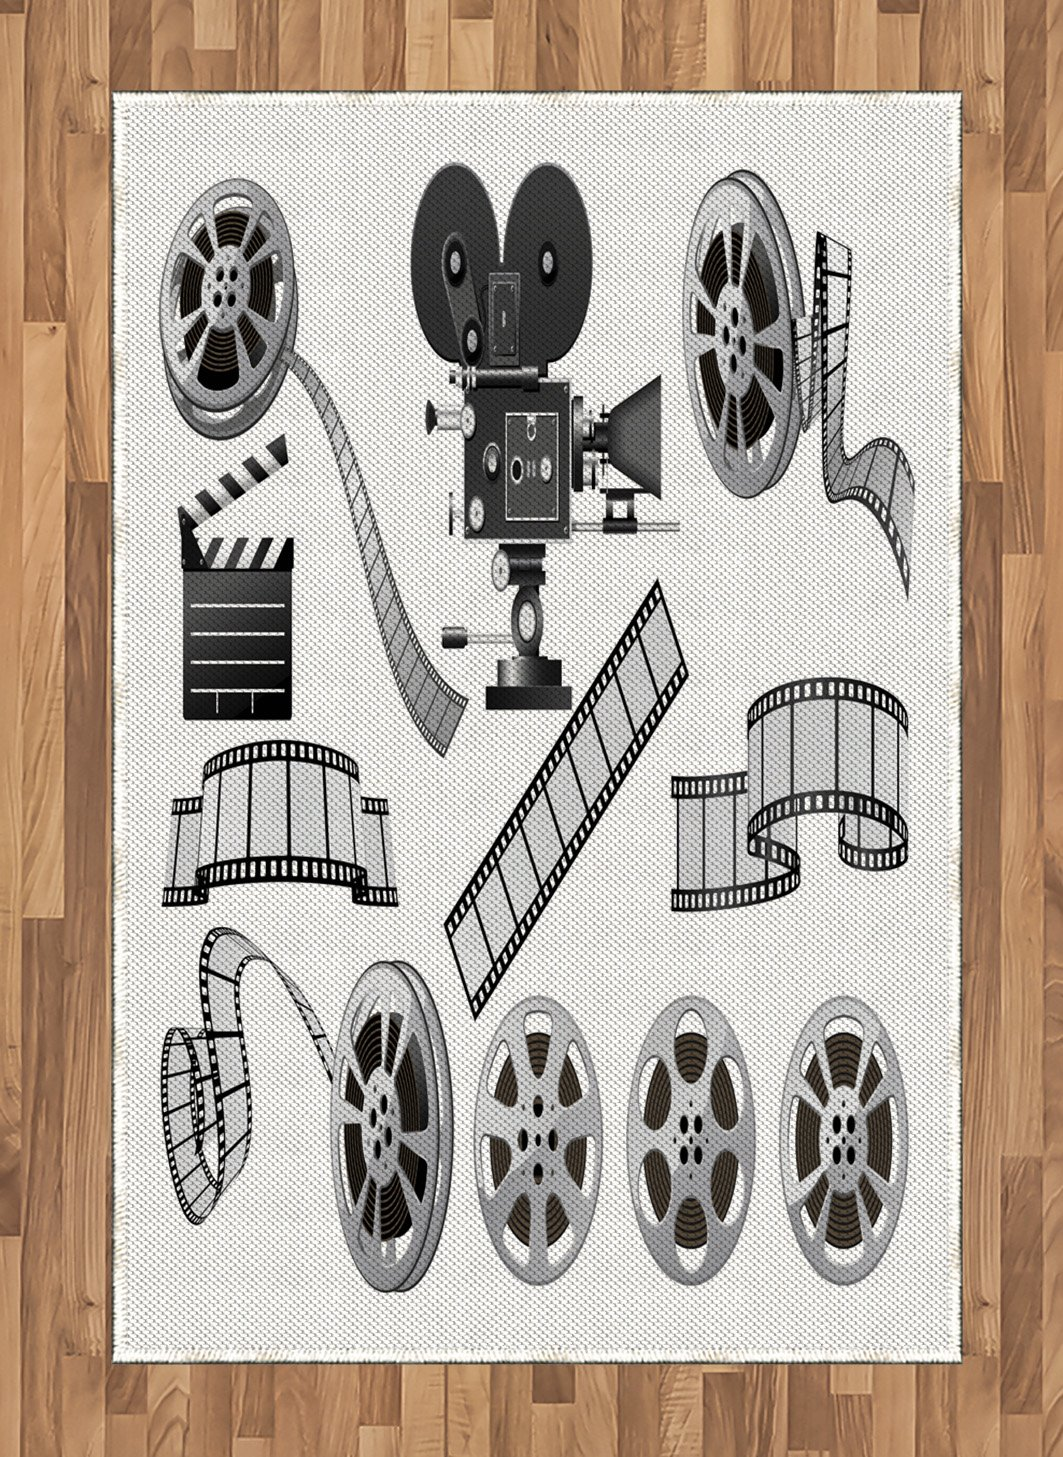 Ambesonne Movie Theater Area Rug, Movie Industry Themed Greyscale Illustration of Projector Film Slate and Reel, Flat Woven Accent Rug for Living Room Bedroom Dining Room, 4 X 5.7 FT, Grey Black